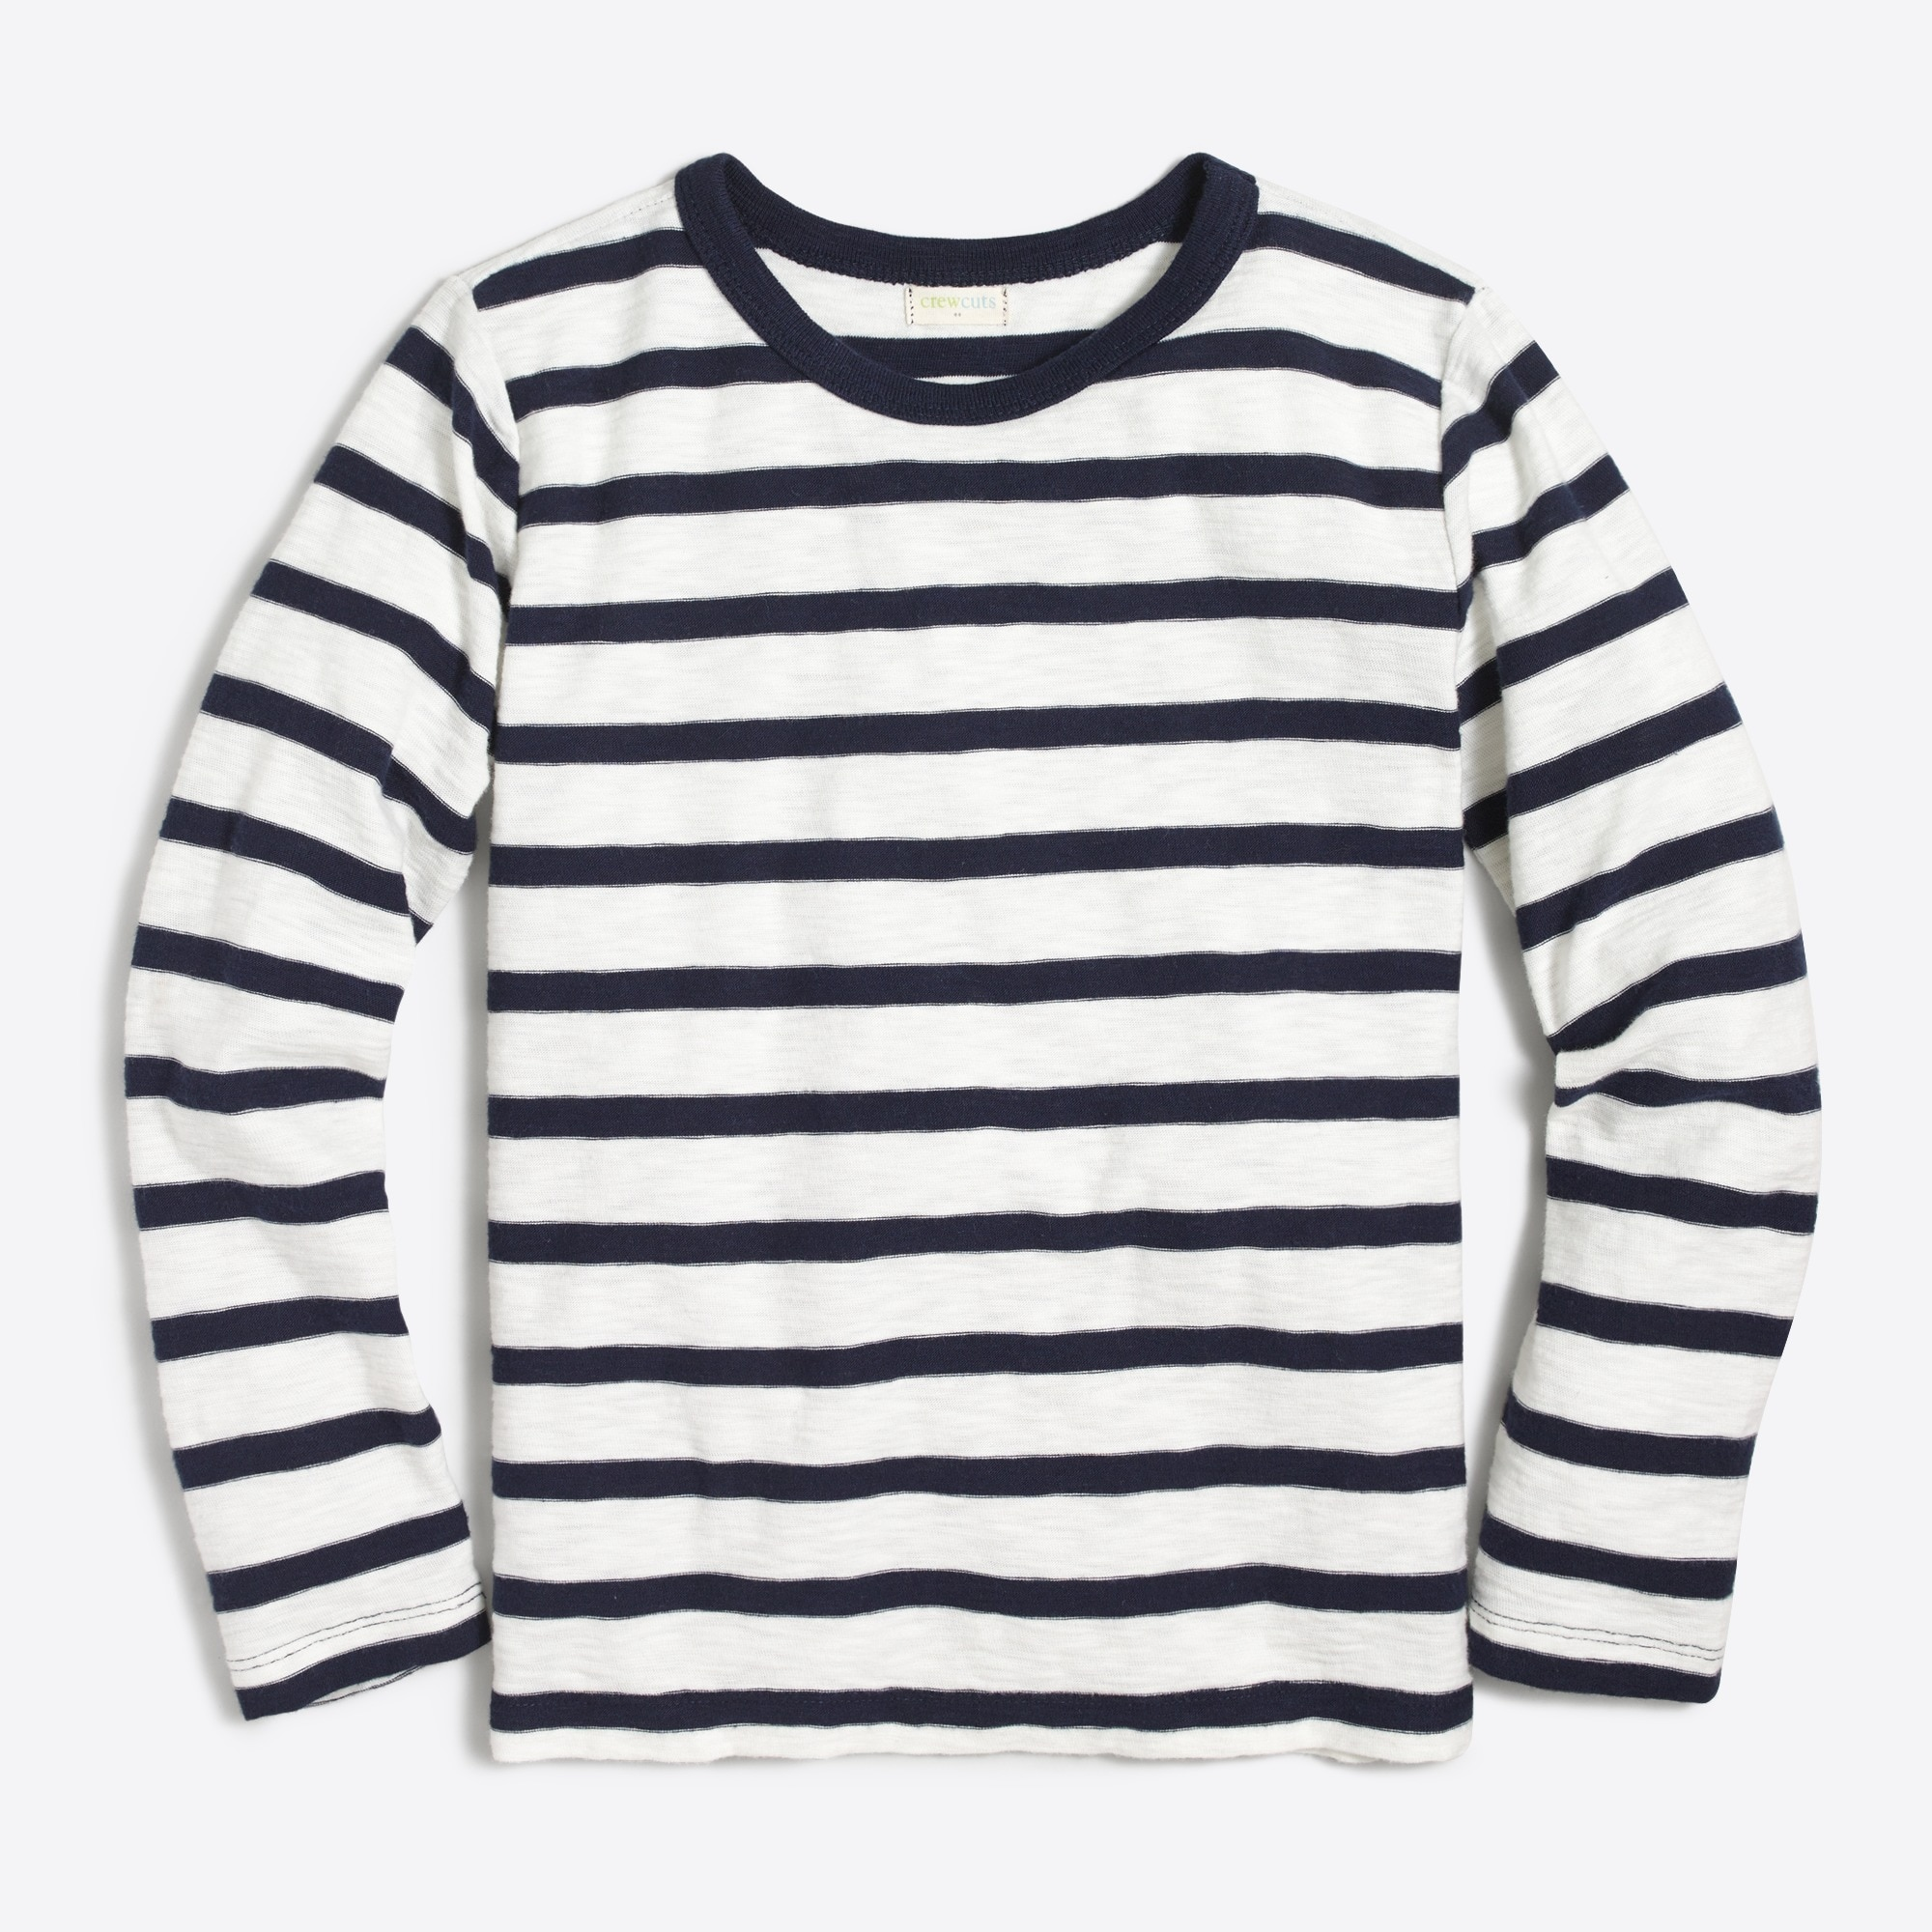 Image 1 for Boys' long-sleeve striped T-shirt